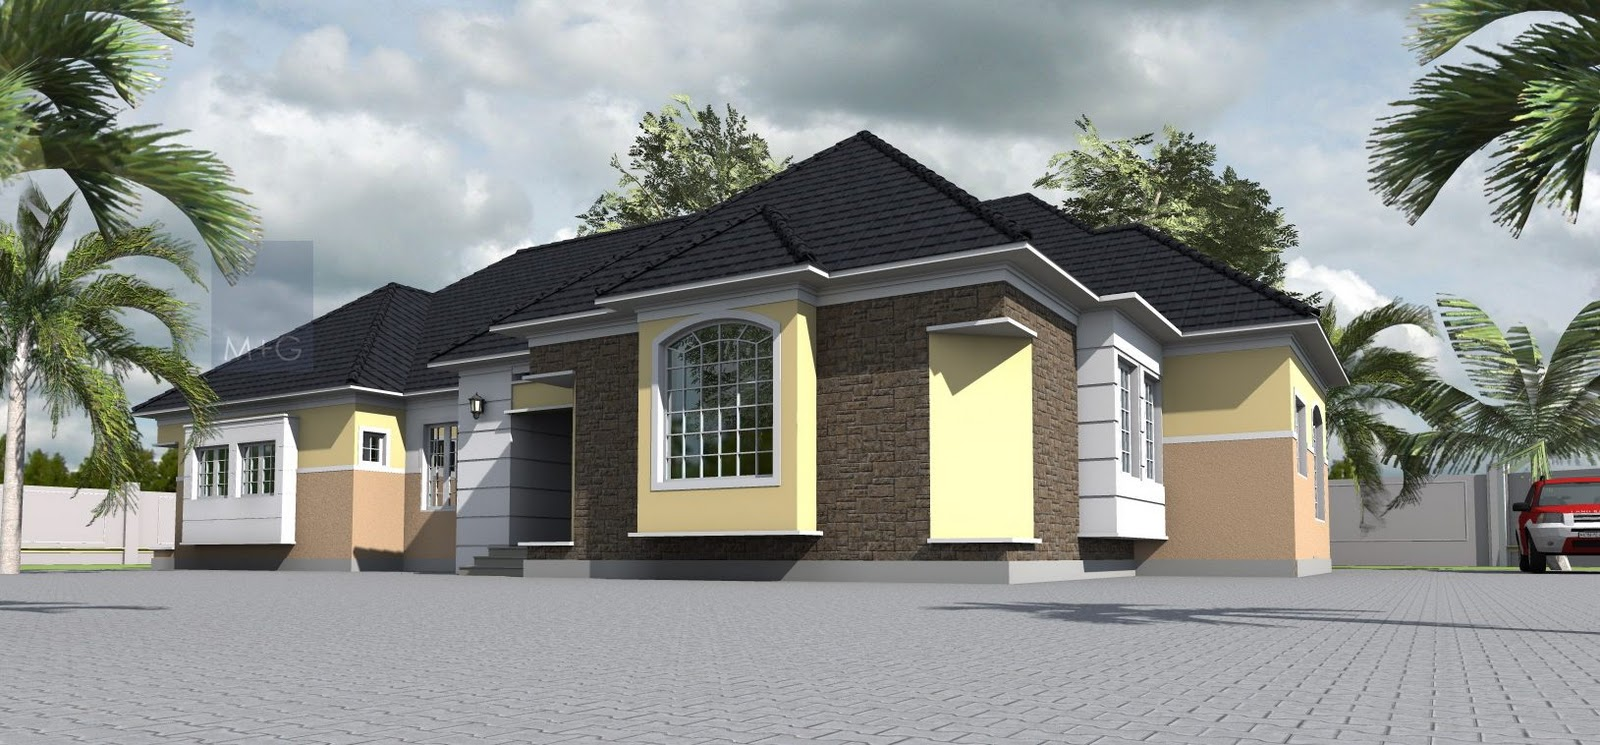 Contemporary nigerian residential architecture 4 bedroom for Modern house designs in nigeria